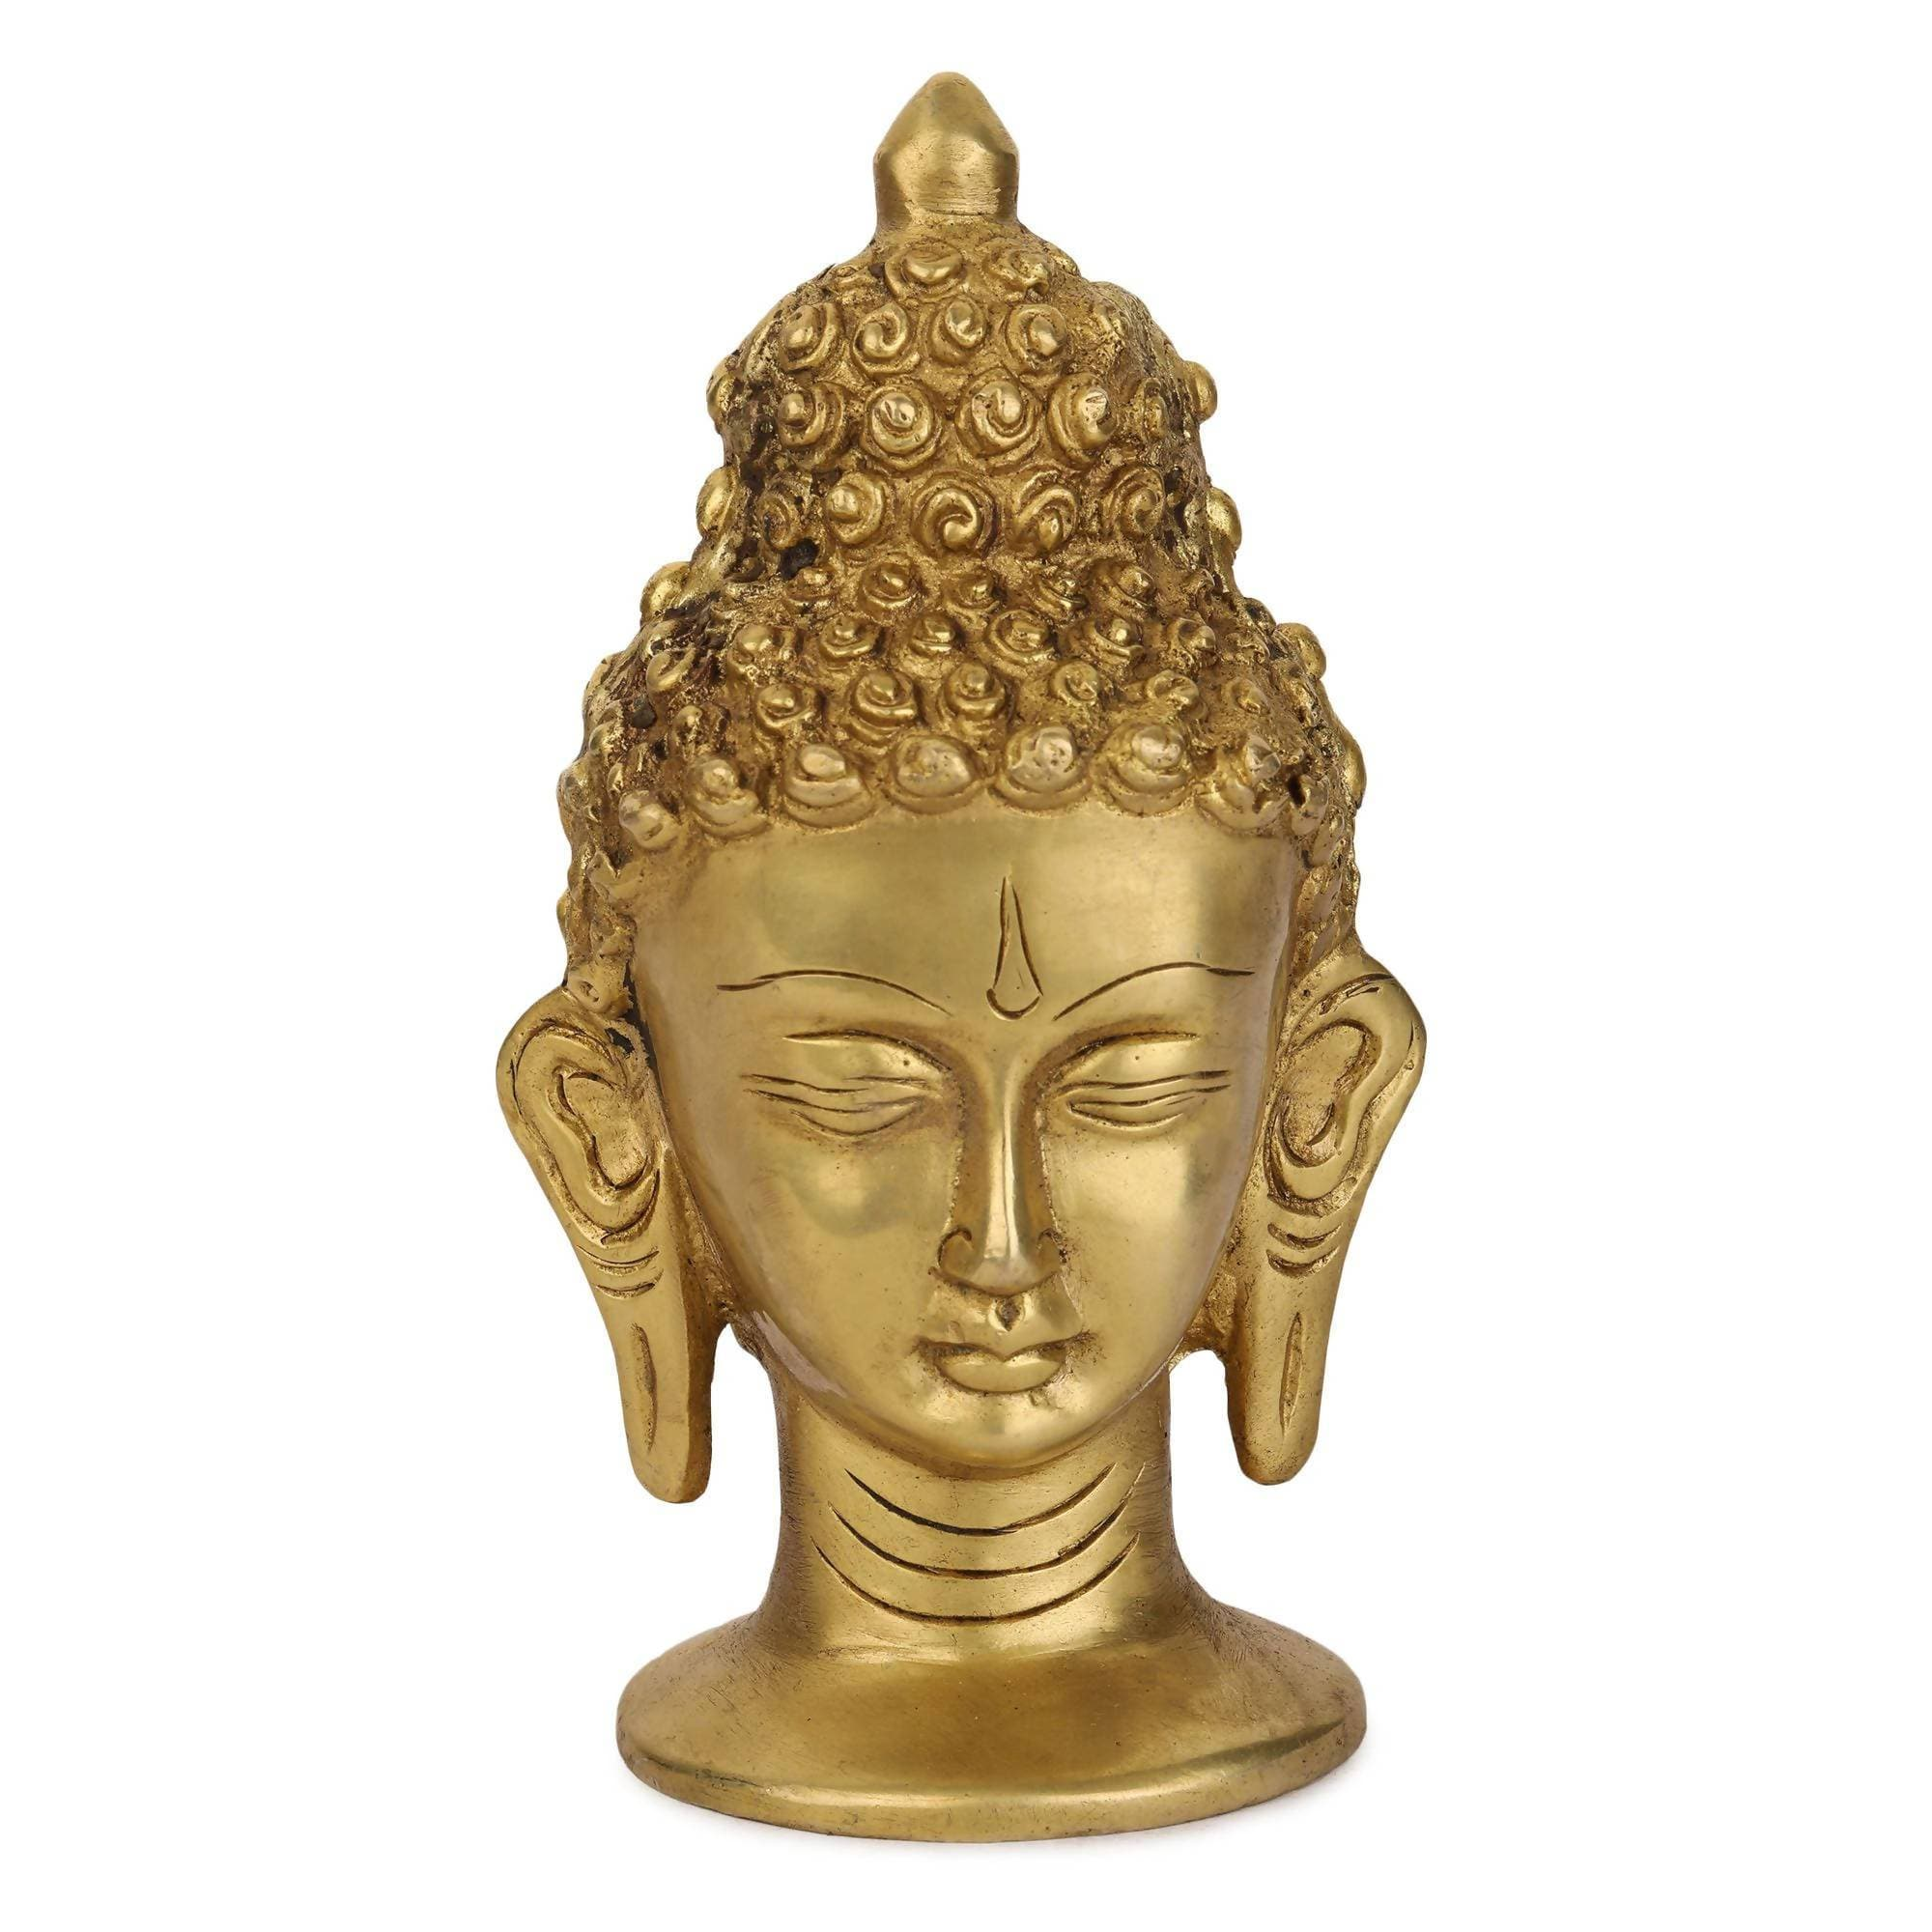 Devlok Buddha Monk Face Idol